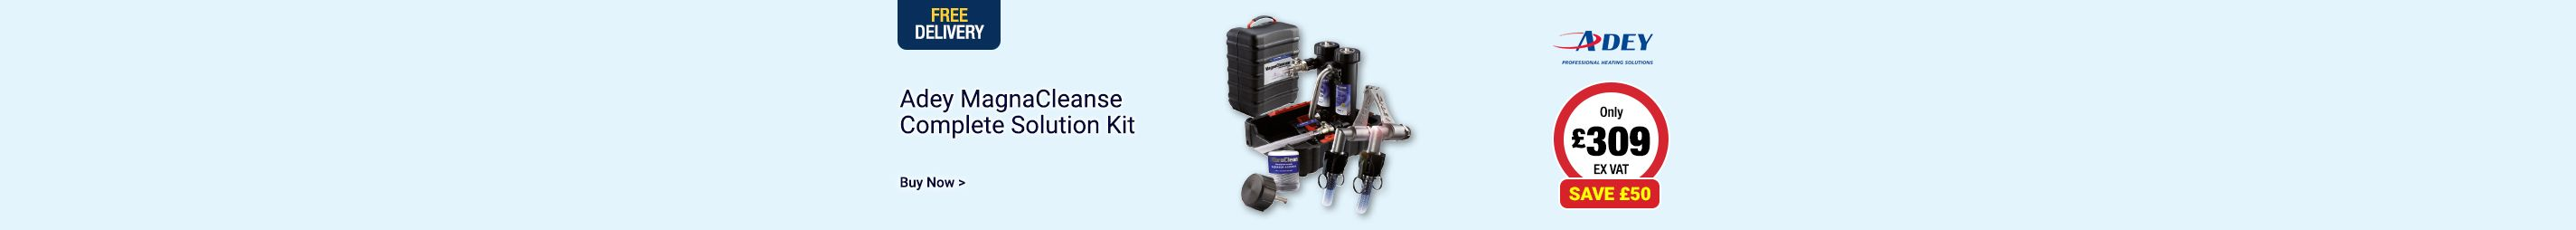 Save £50 on Adey MagnaCleanse Kit